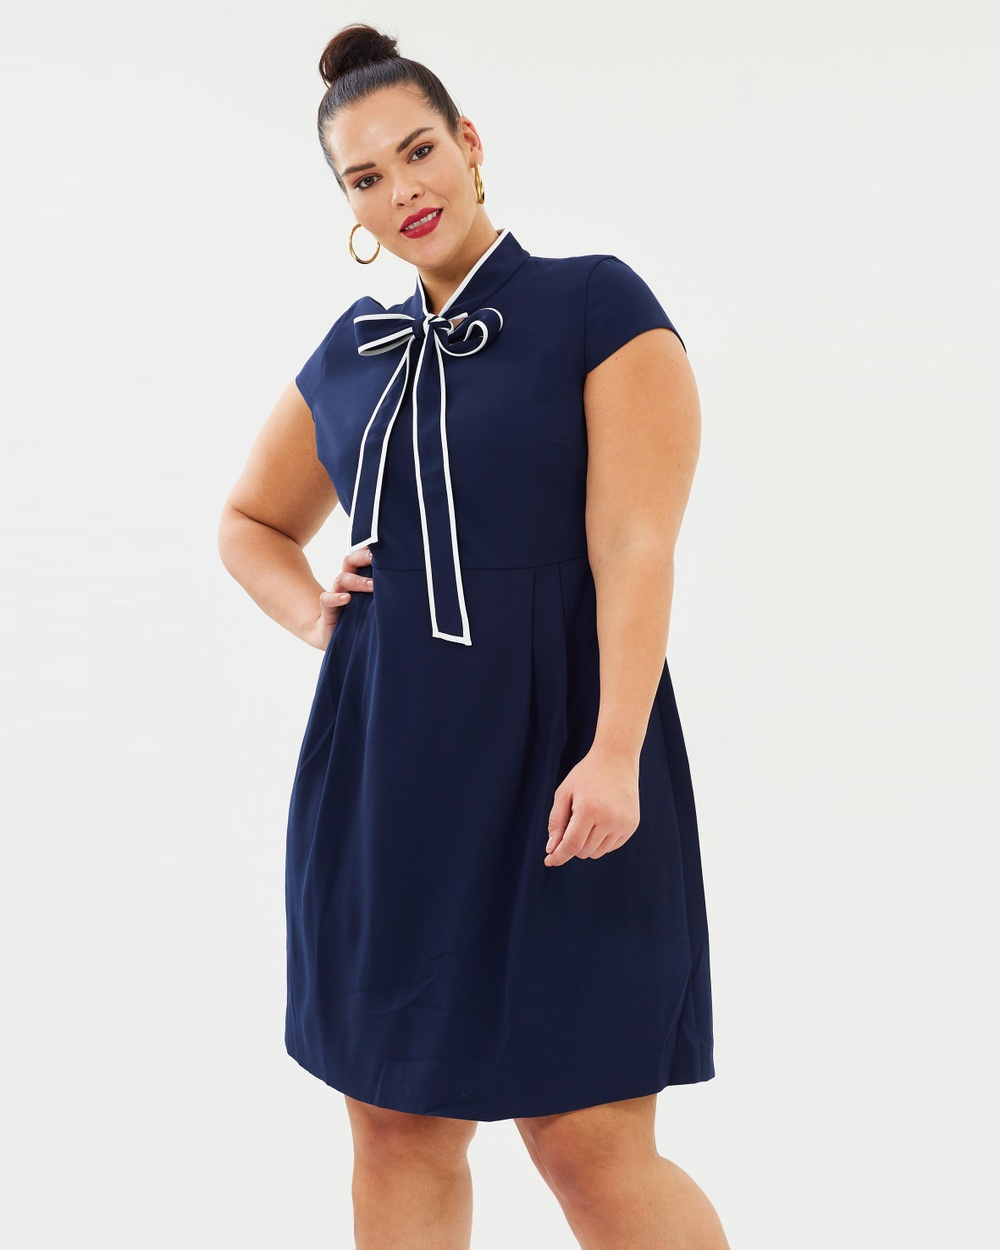 J.Crew Curvy Navy Lucky Crepe Blythe Dress